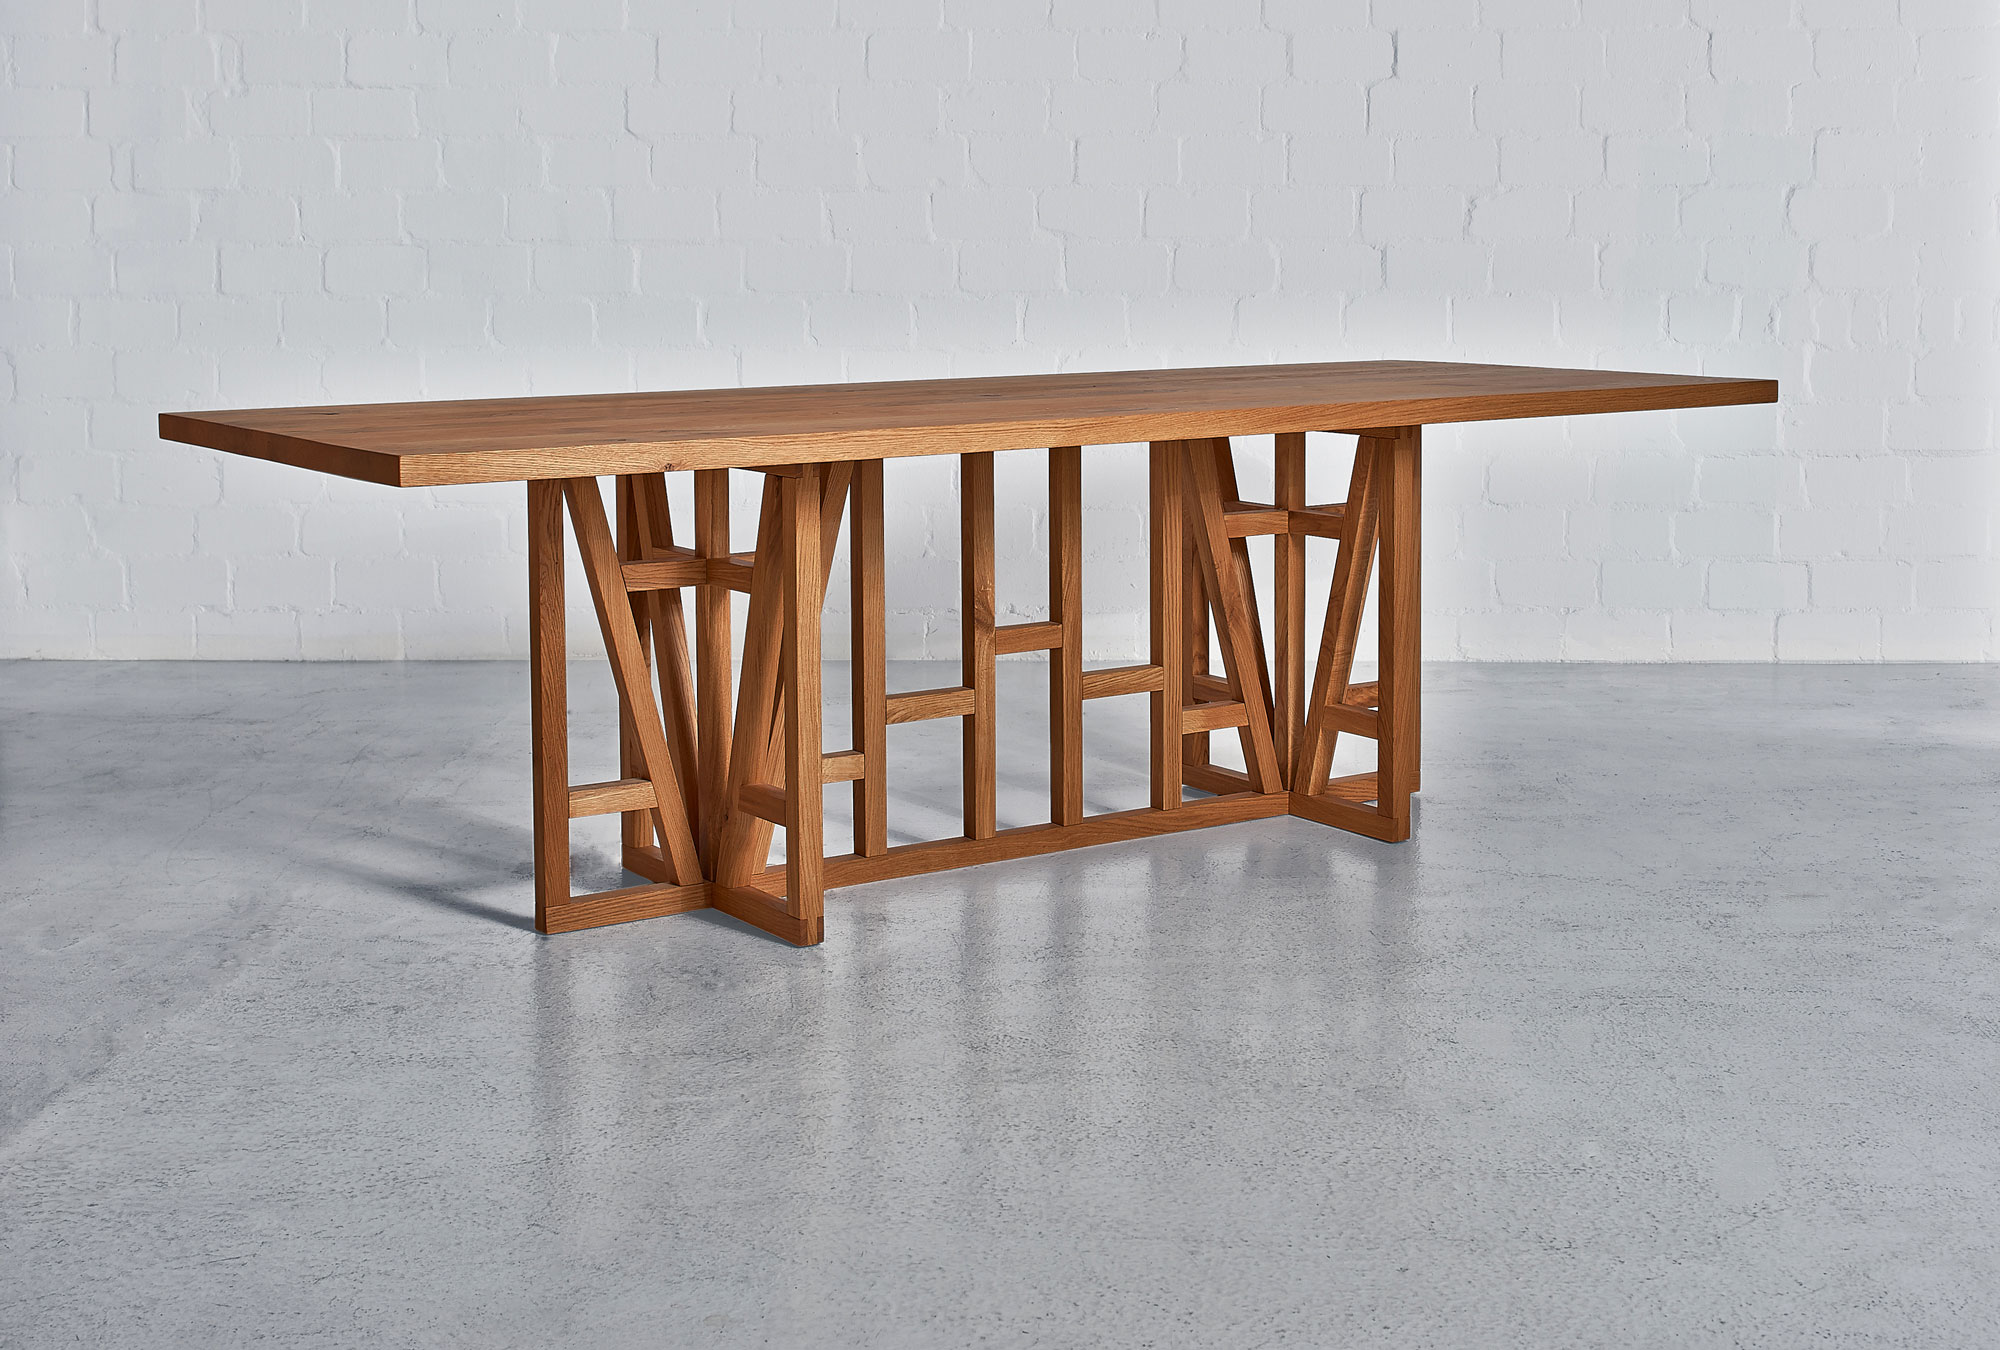 Designer Solid Wood Table FACHWERK 0040a custom made in solid wood by vitamin design